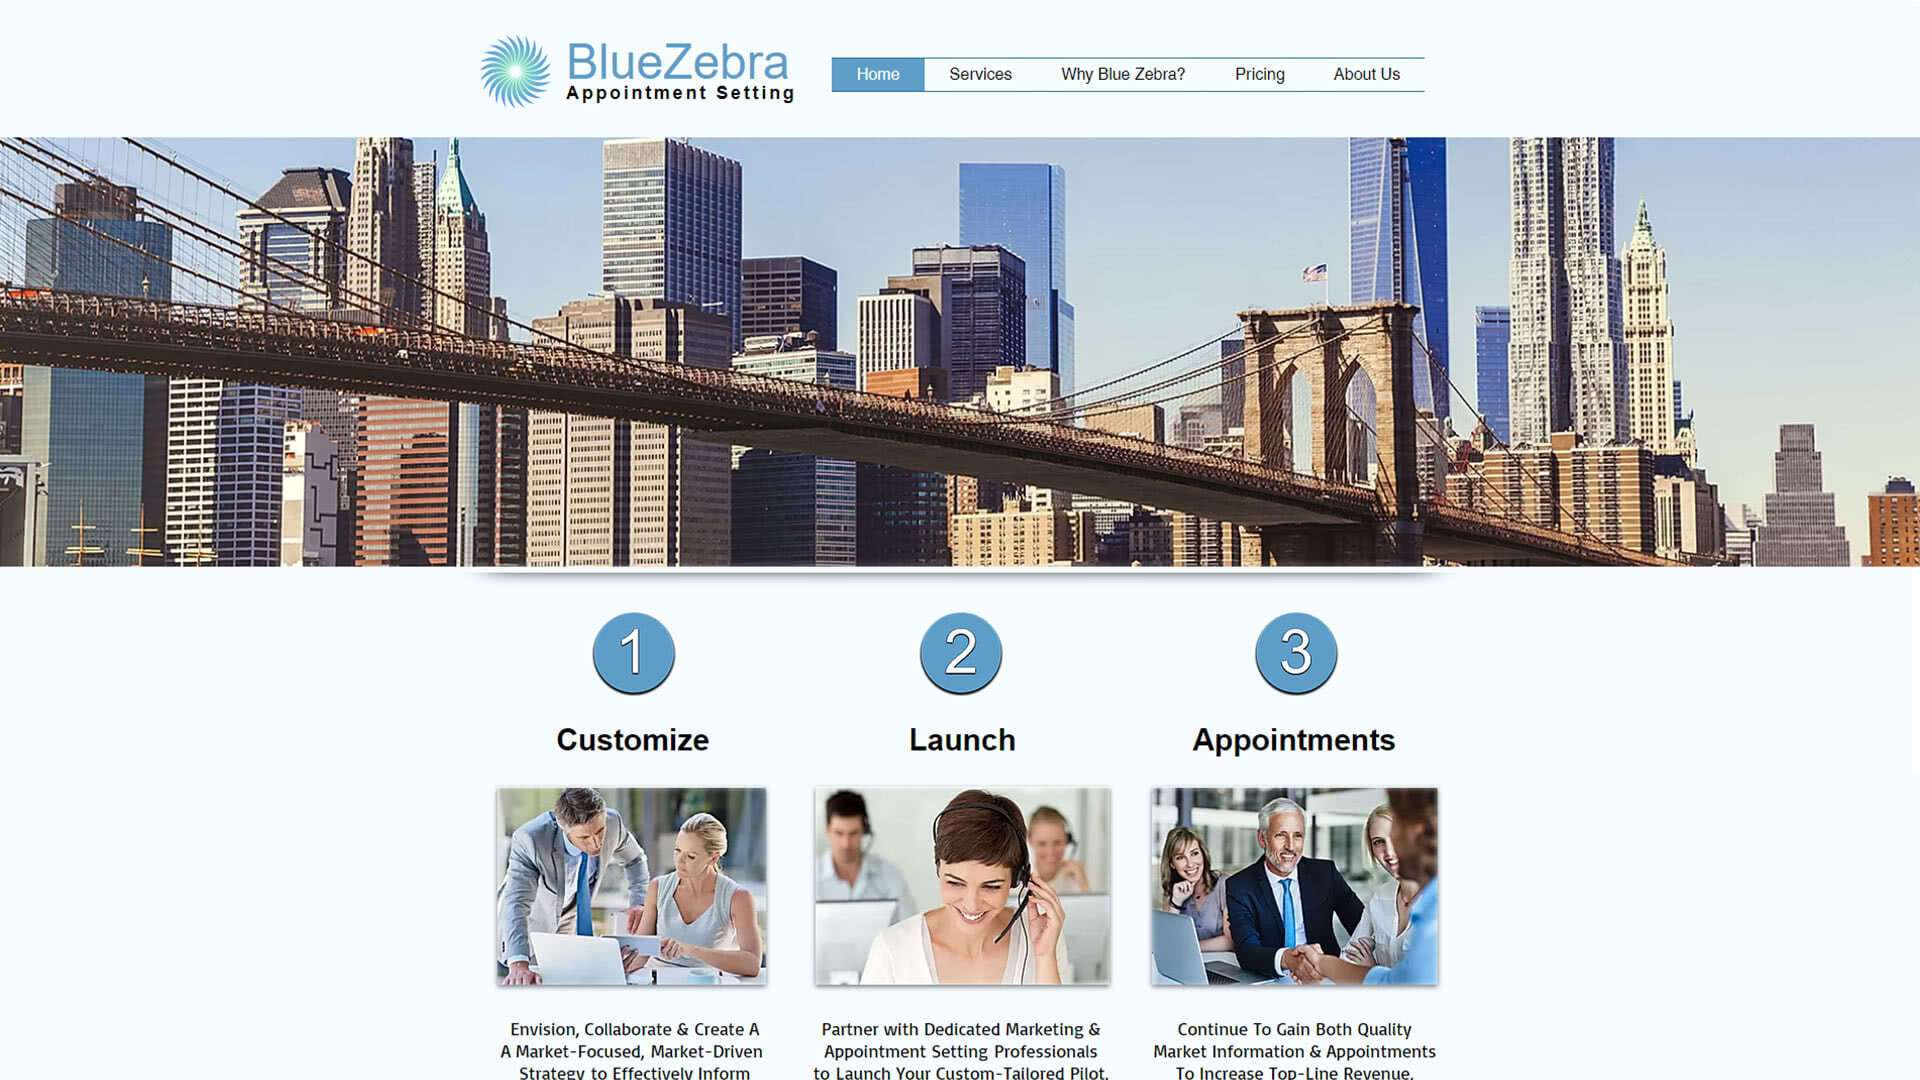 blue-zebra-appointment-setting-home-page